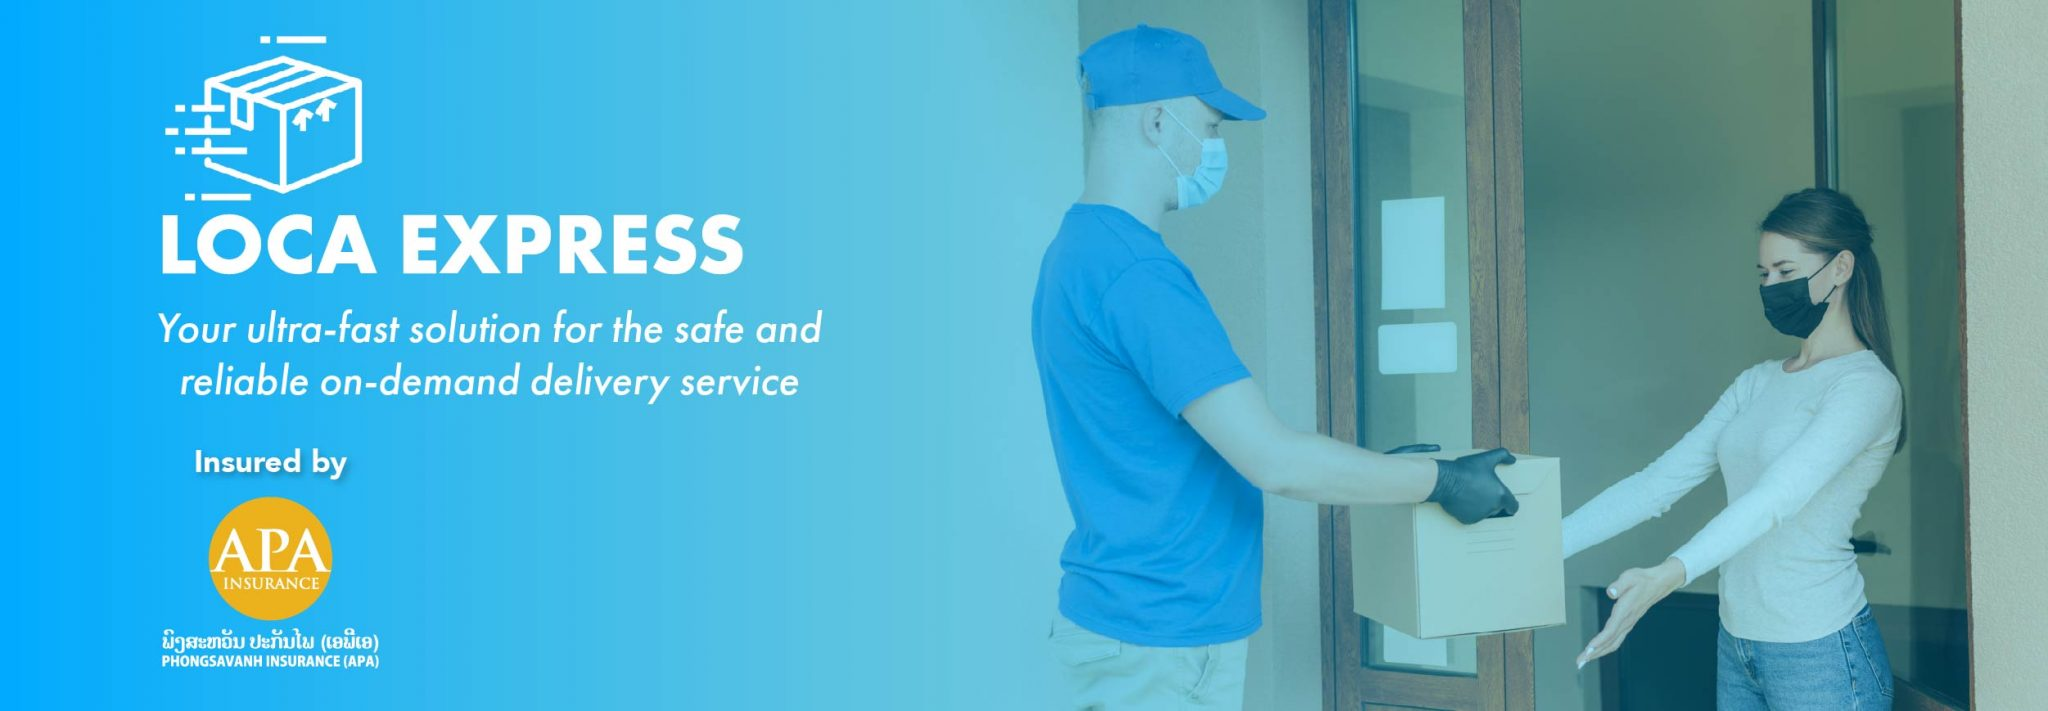 LOCA EXPRESS Ultra-fast Door-to-door package delivery solution for personal or business